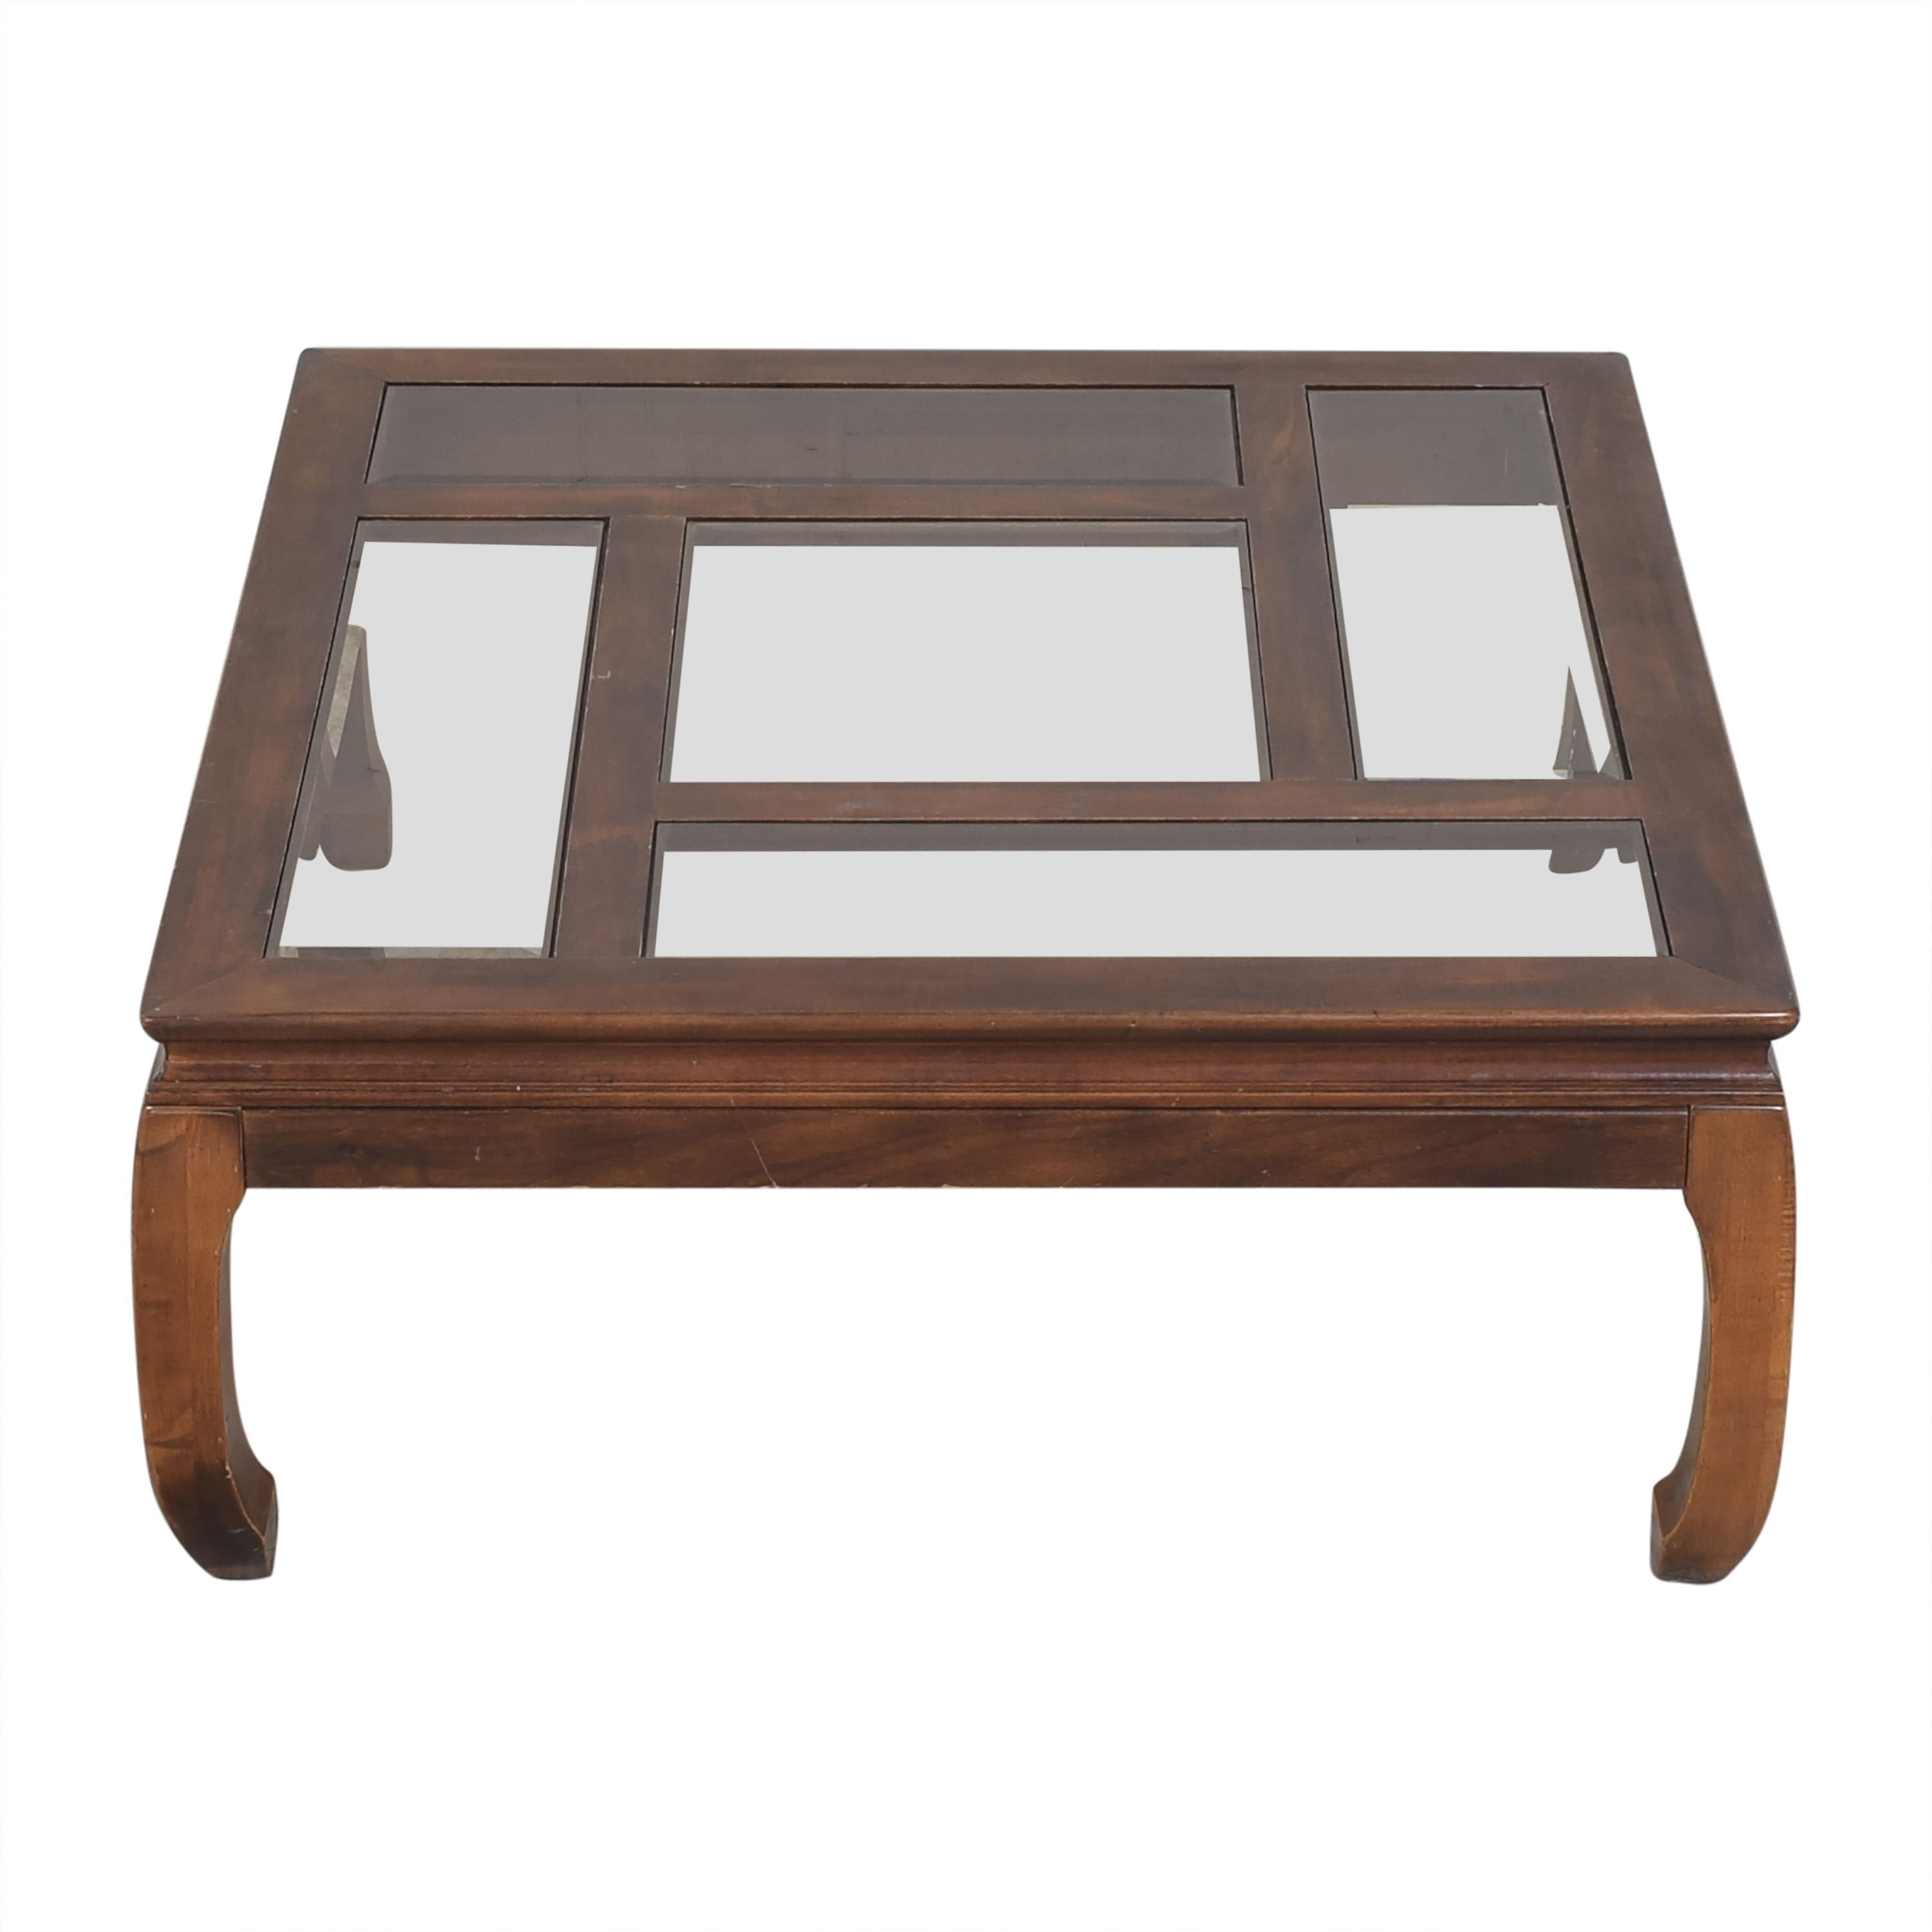 Square Top Coffee Table brown